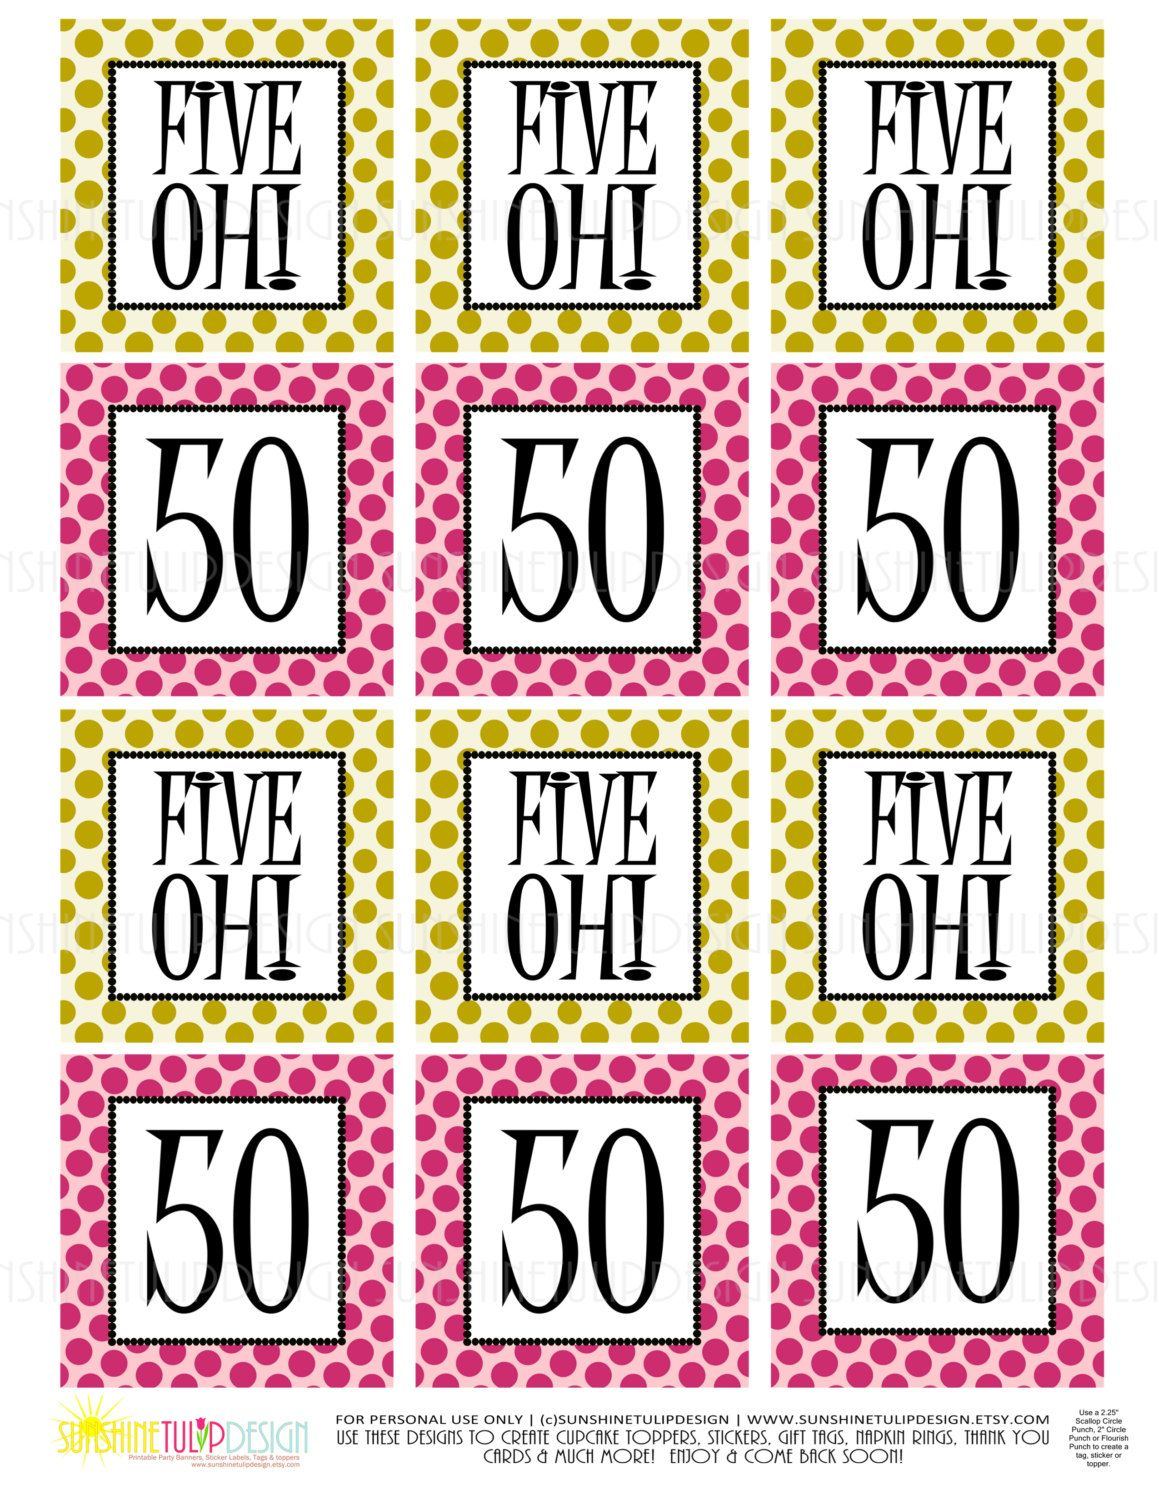 Gold Pink Polka Dots For This 50th Birthday Five Oh Printable Gift Tags Cupcake Toppers Sticker Labels By SUNSHINETULIPDESIGN Sunshinetulipdesign On